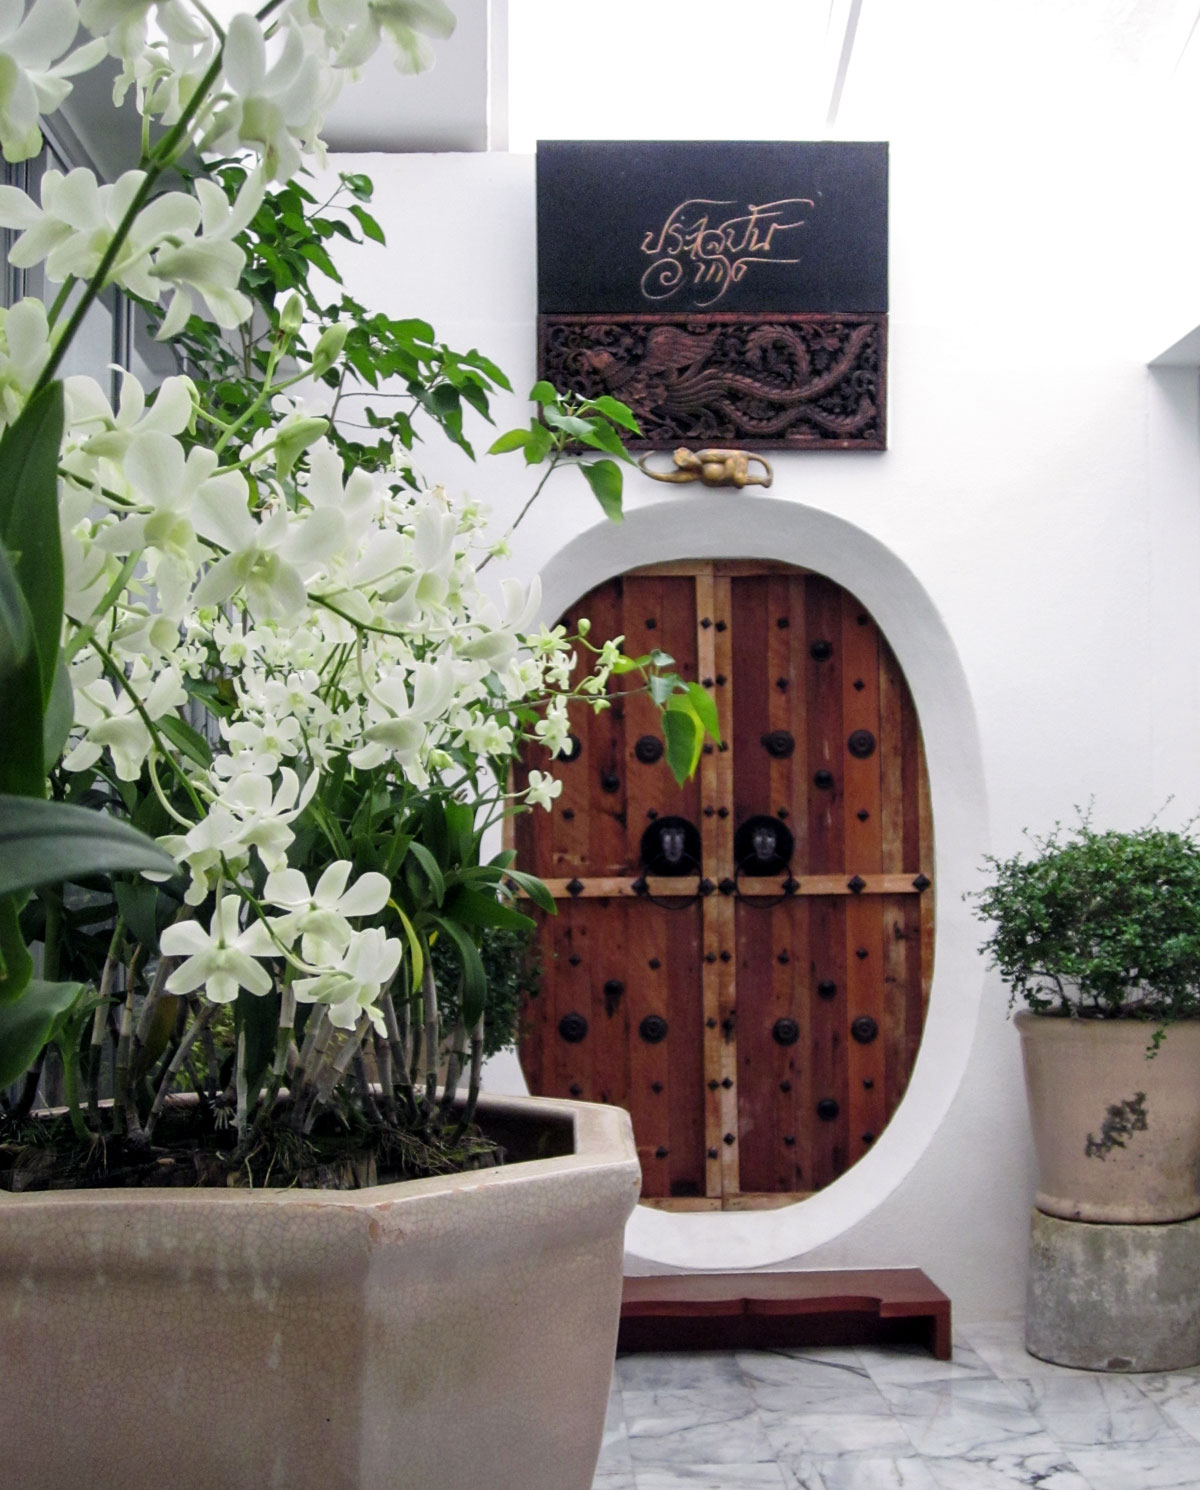 The entrance of the Inao Suite at the Muang Kulaypan beach resort, Samui. photo: the art resort.